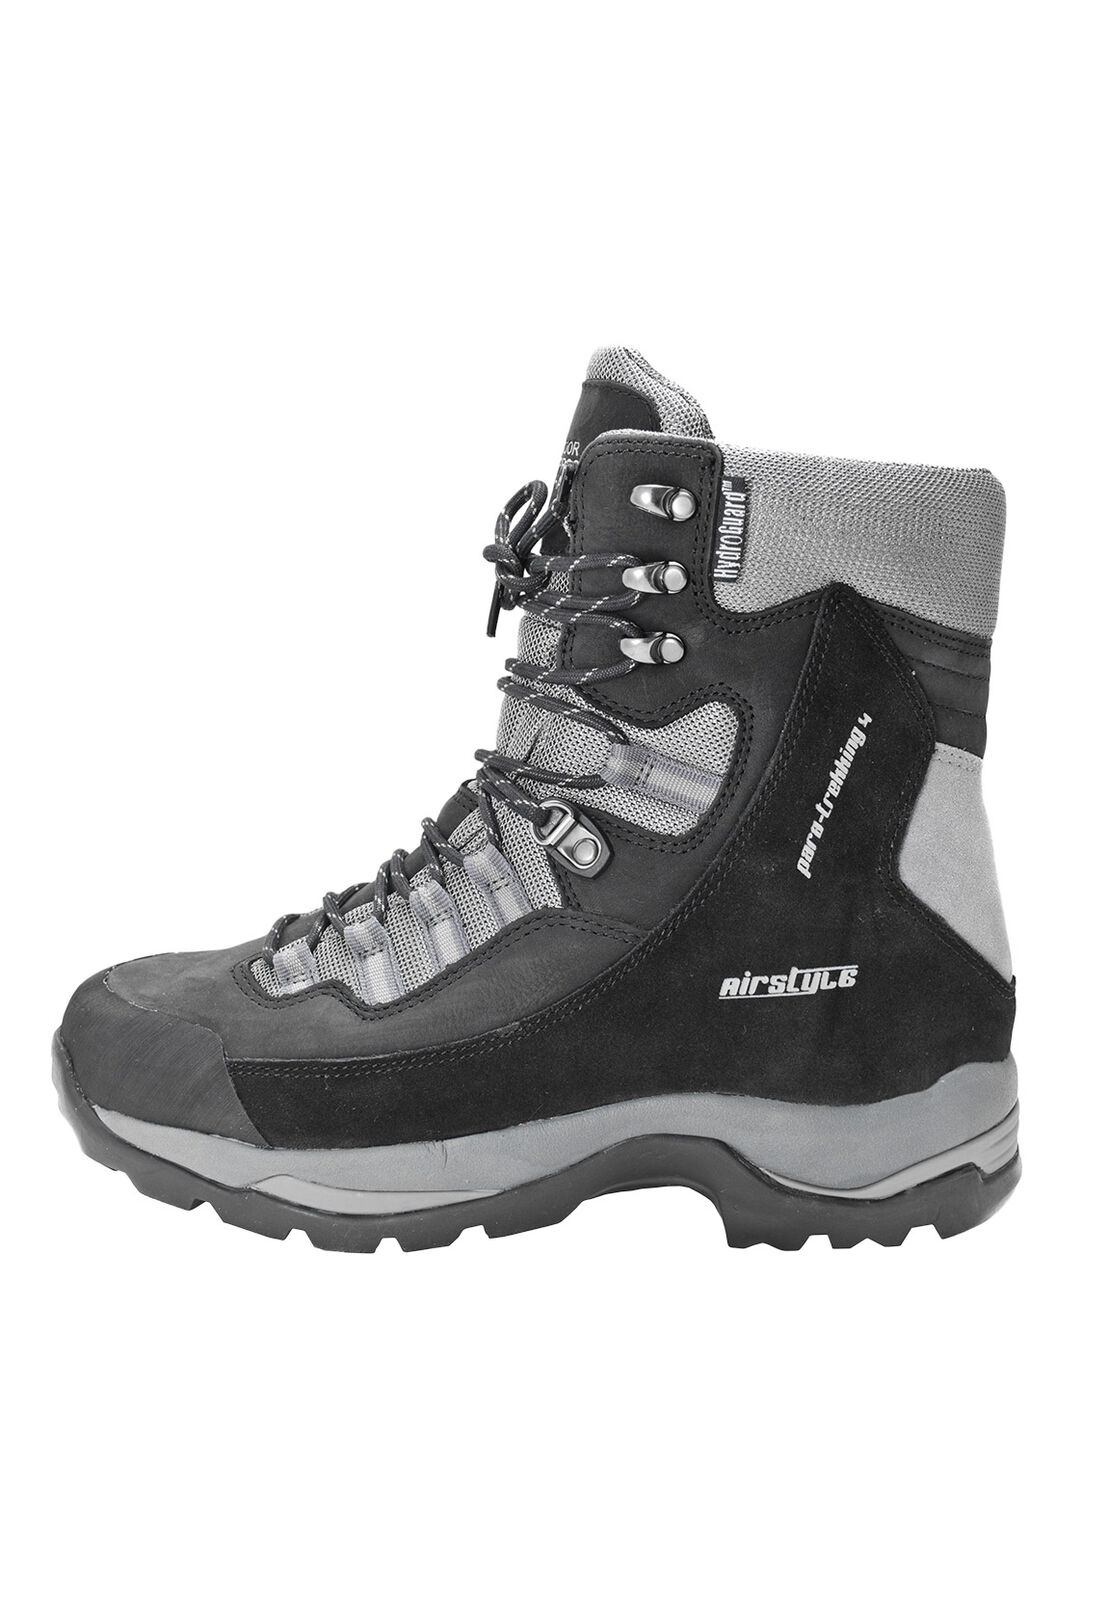 Airstyle Para-Trekking 4 shoes Outdoor Boots Especially for Paragliders